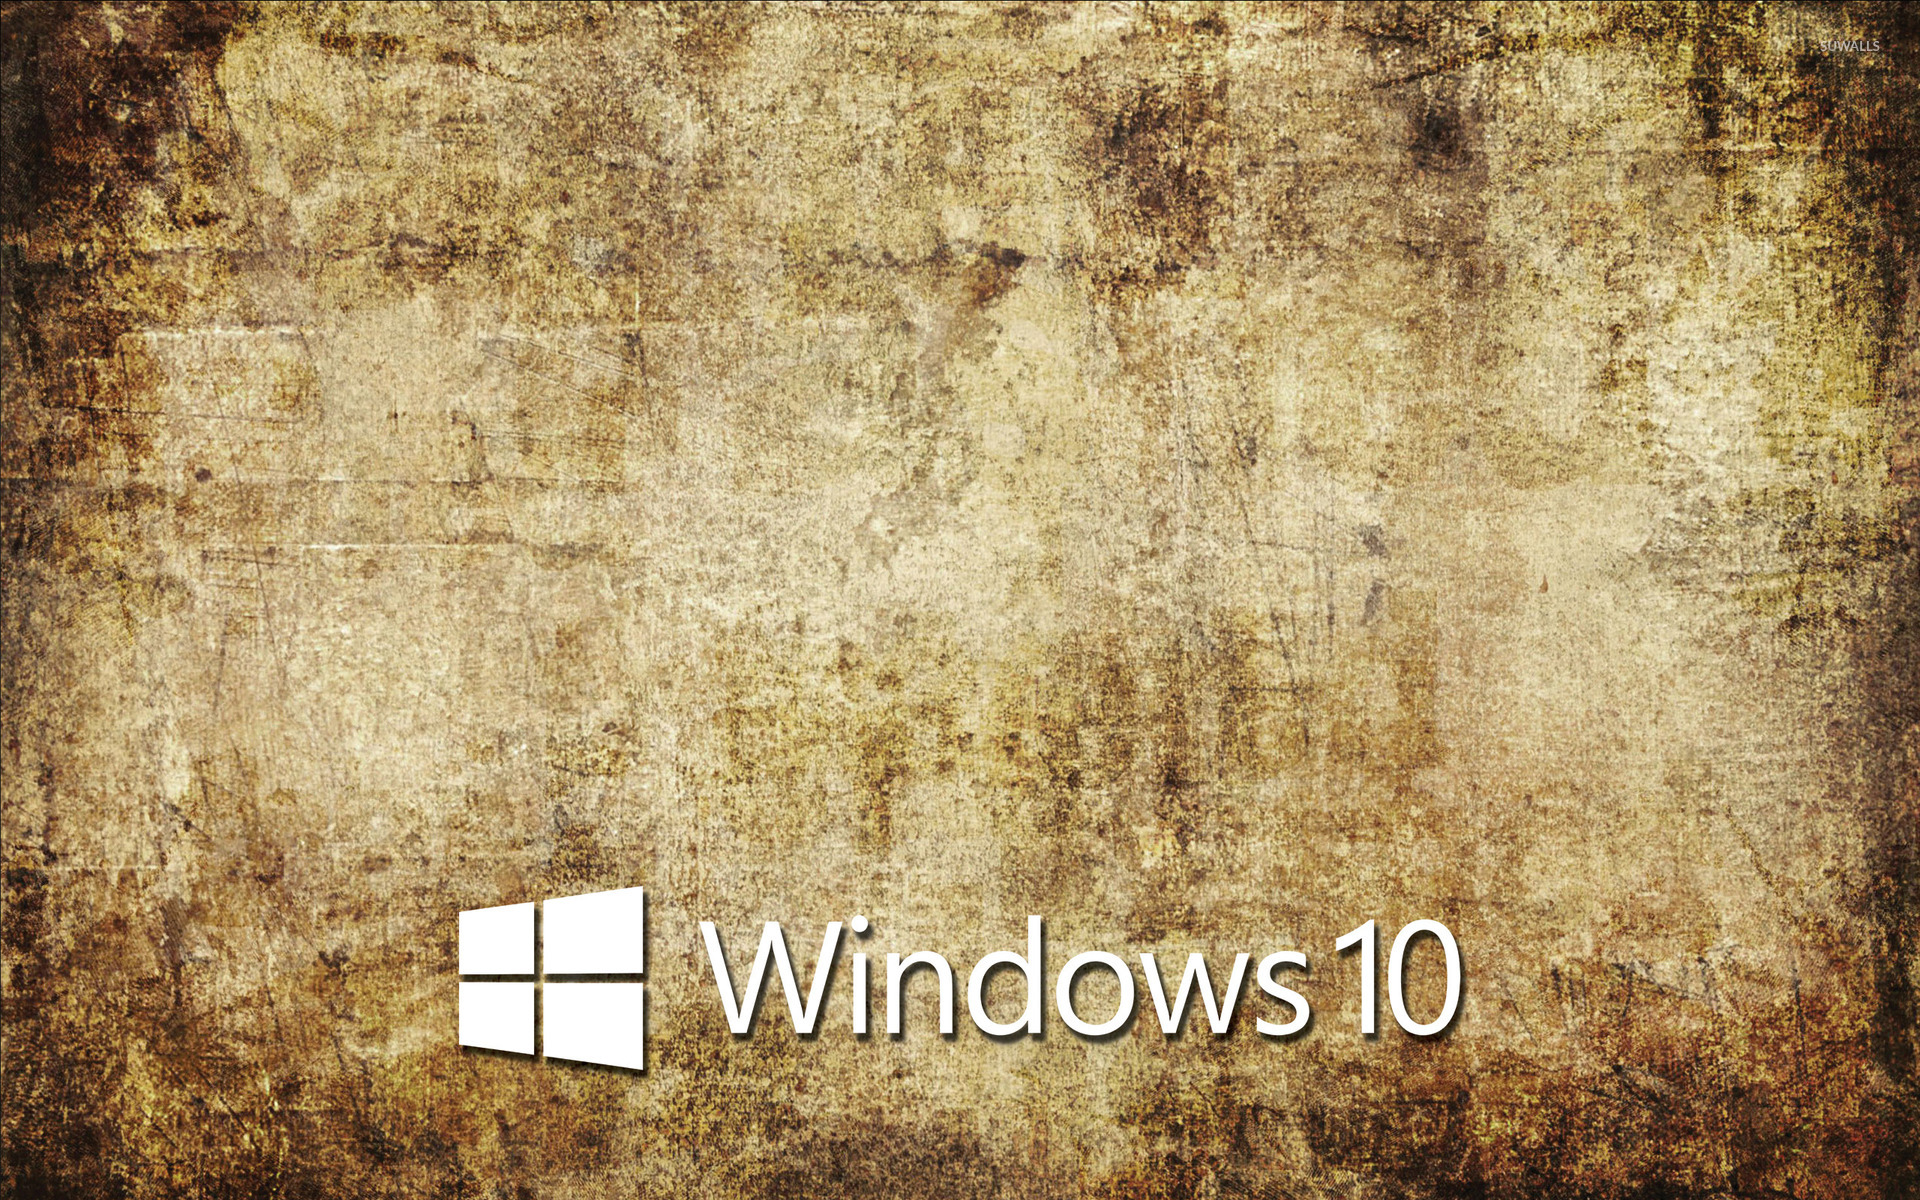 Windows 10 text logo on old concrete wallpaper - Computer ...